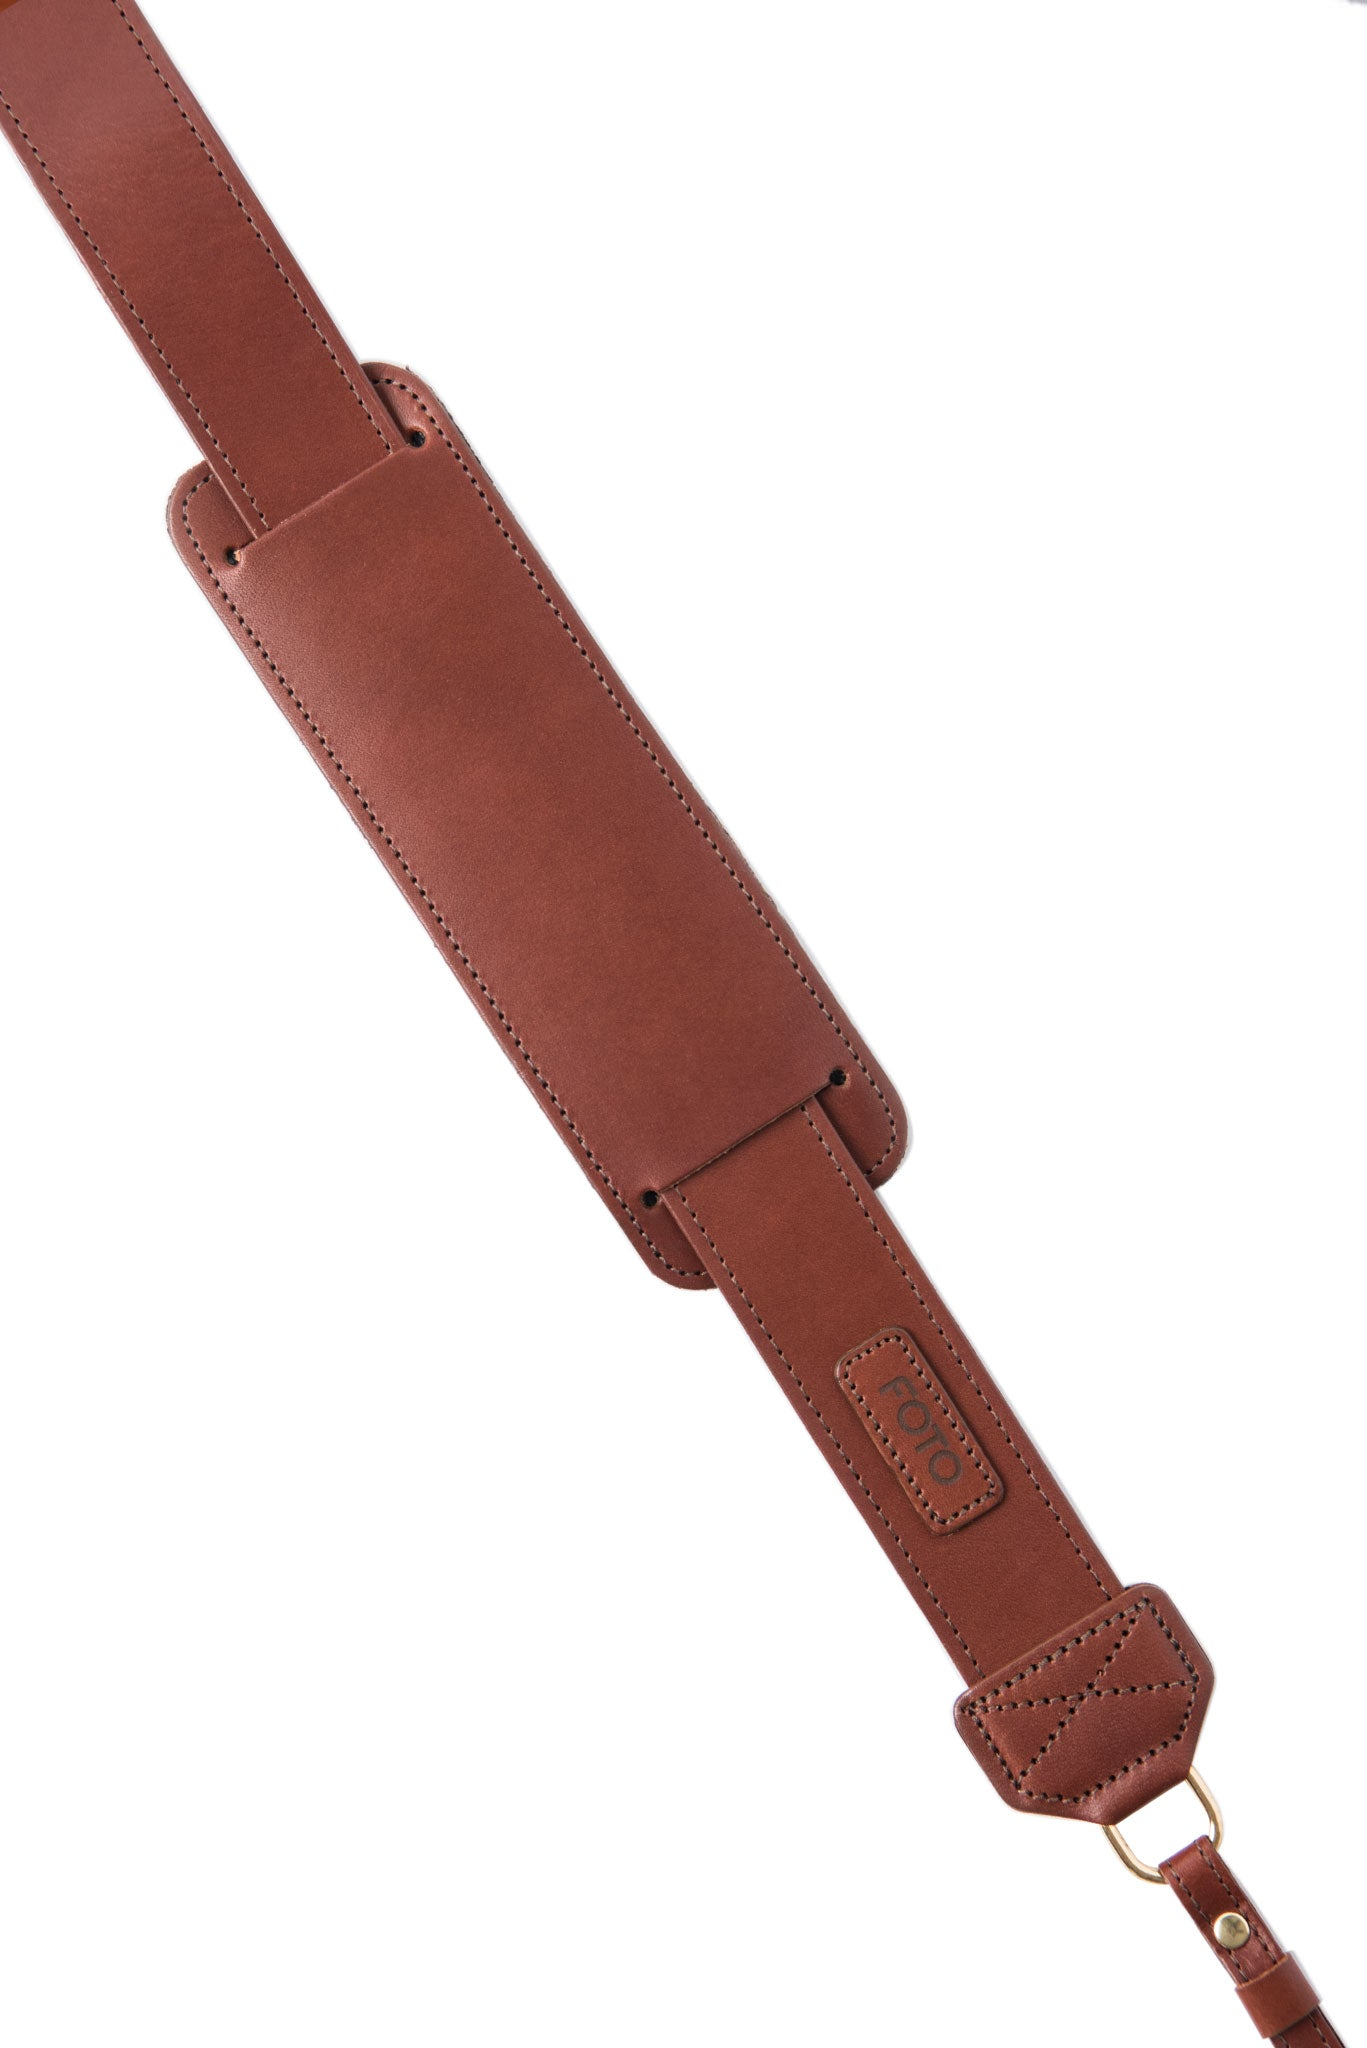 FOTO | Dutch Fotostrap - a medium brown genuine all-leather camera strap that can be personalized with a monogram or business logo, making this leather camera strap the perfect personalized gift.